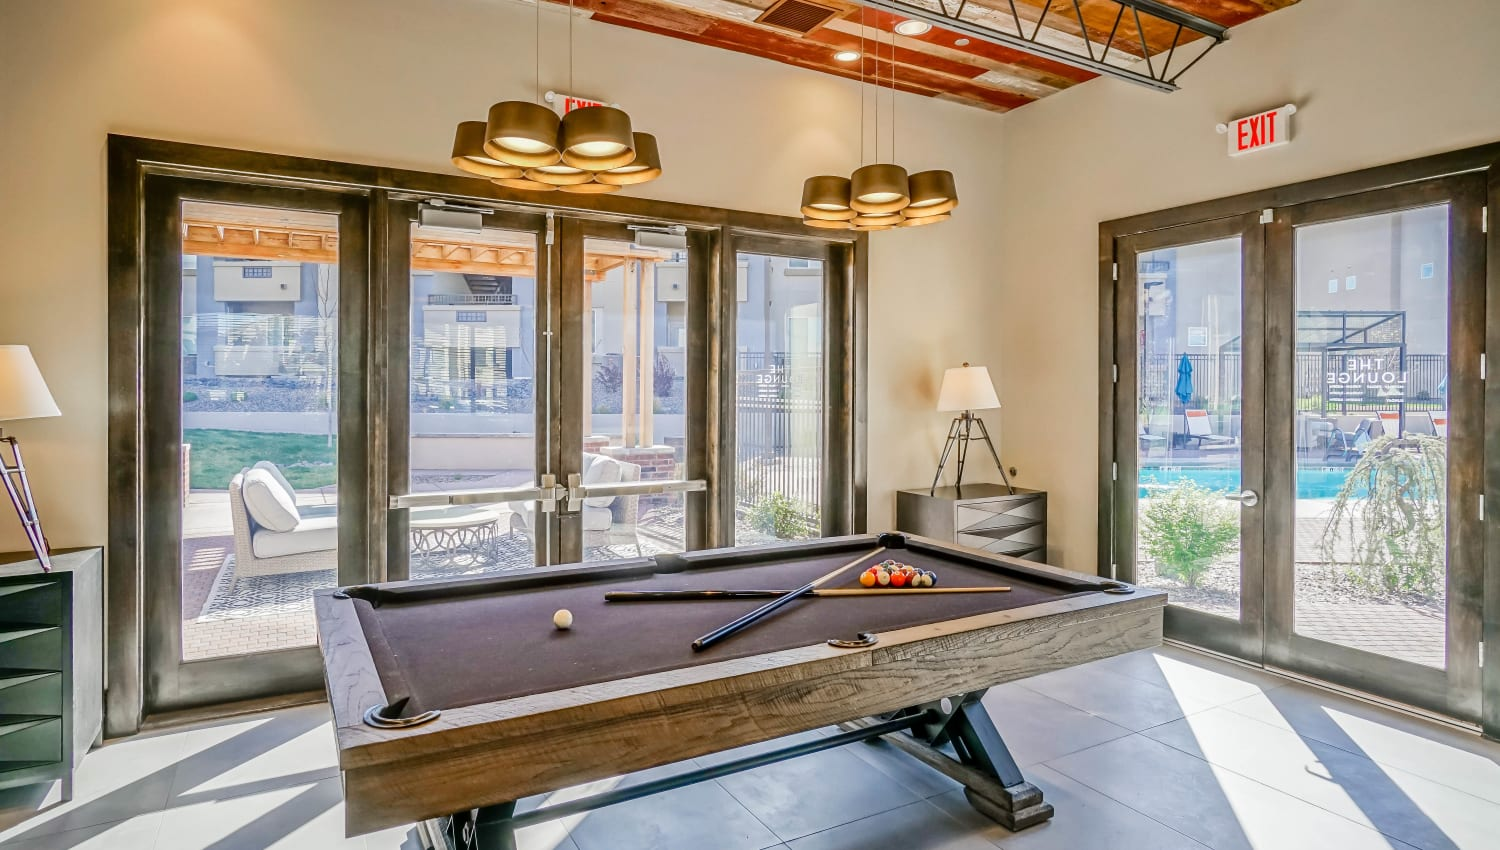 Billiards table in the clubhouse at Olympus Northpoint in Albuquerque, New Mexico